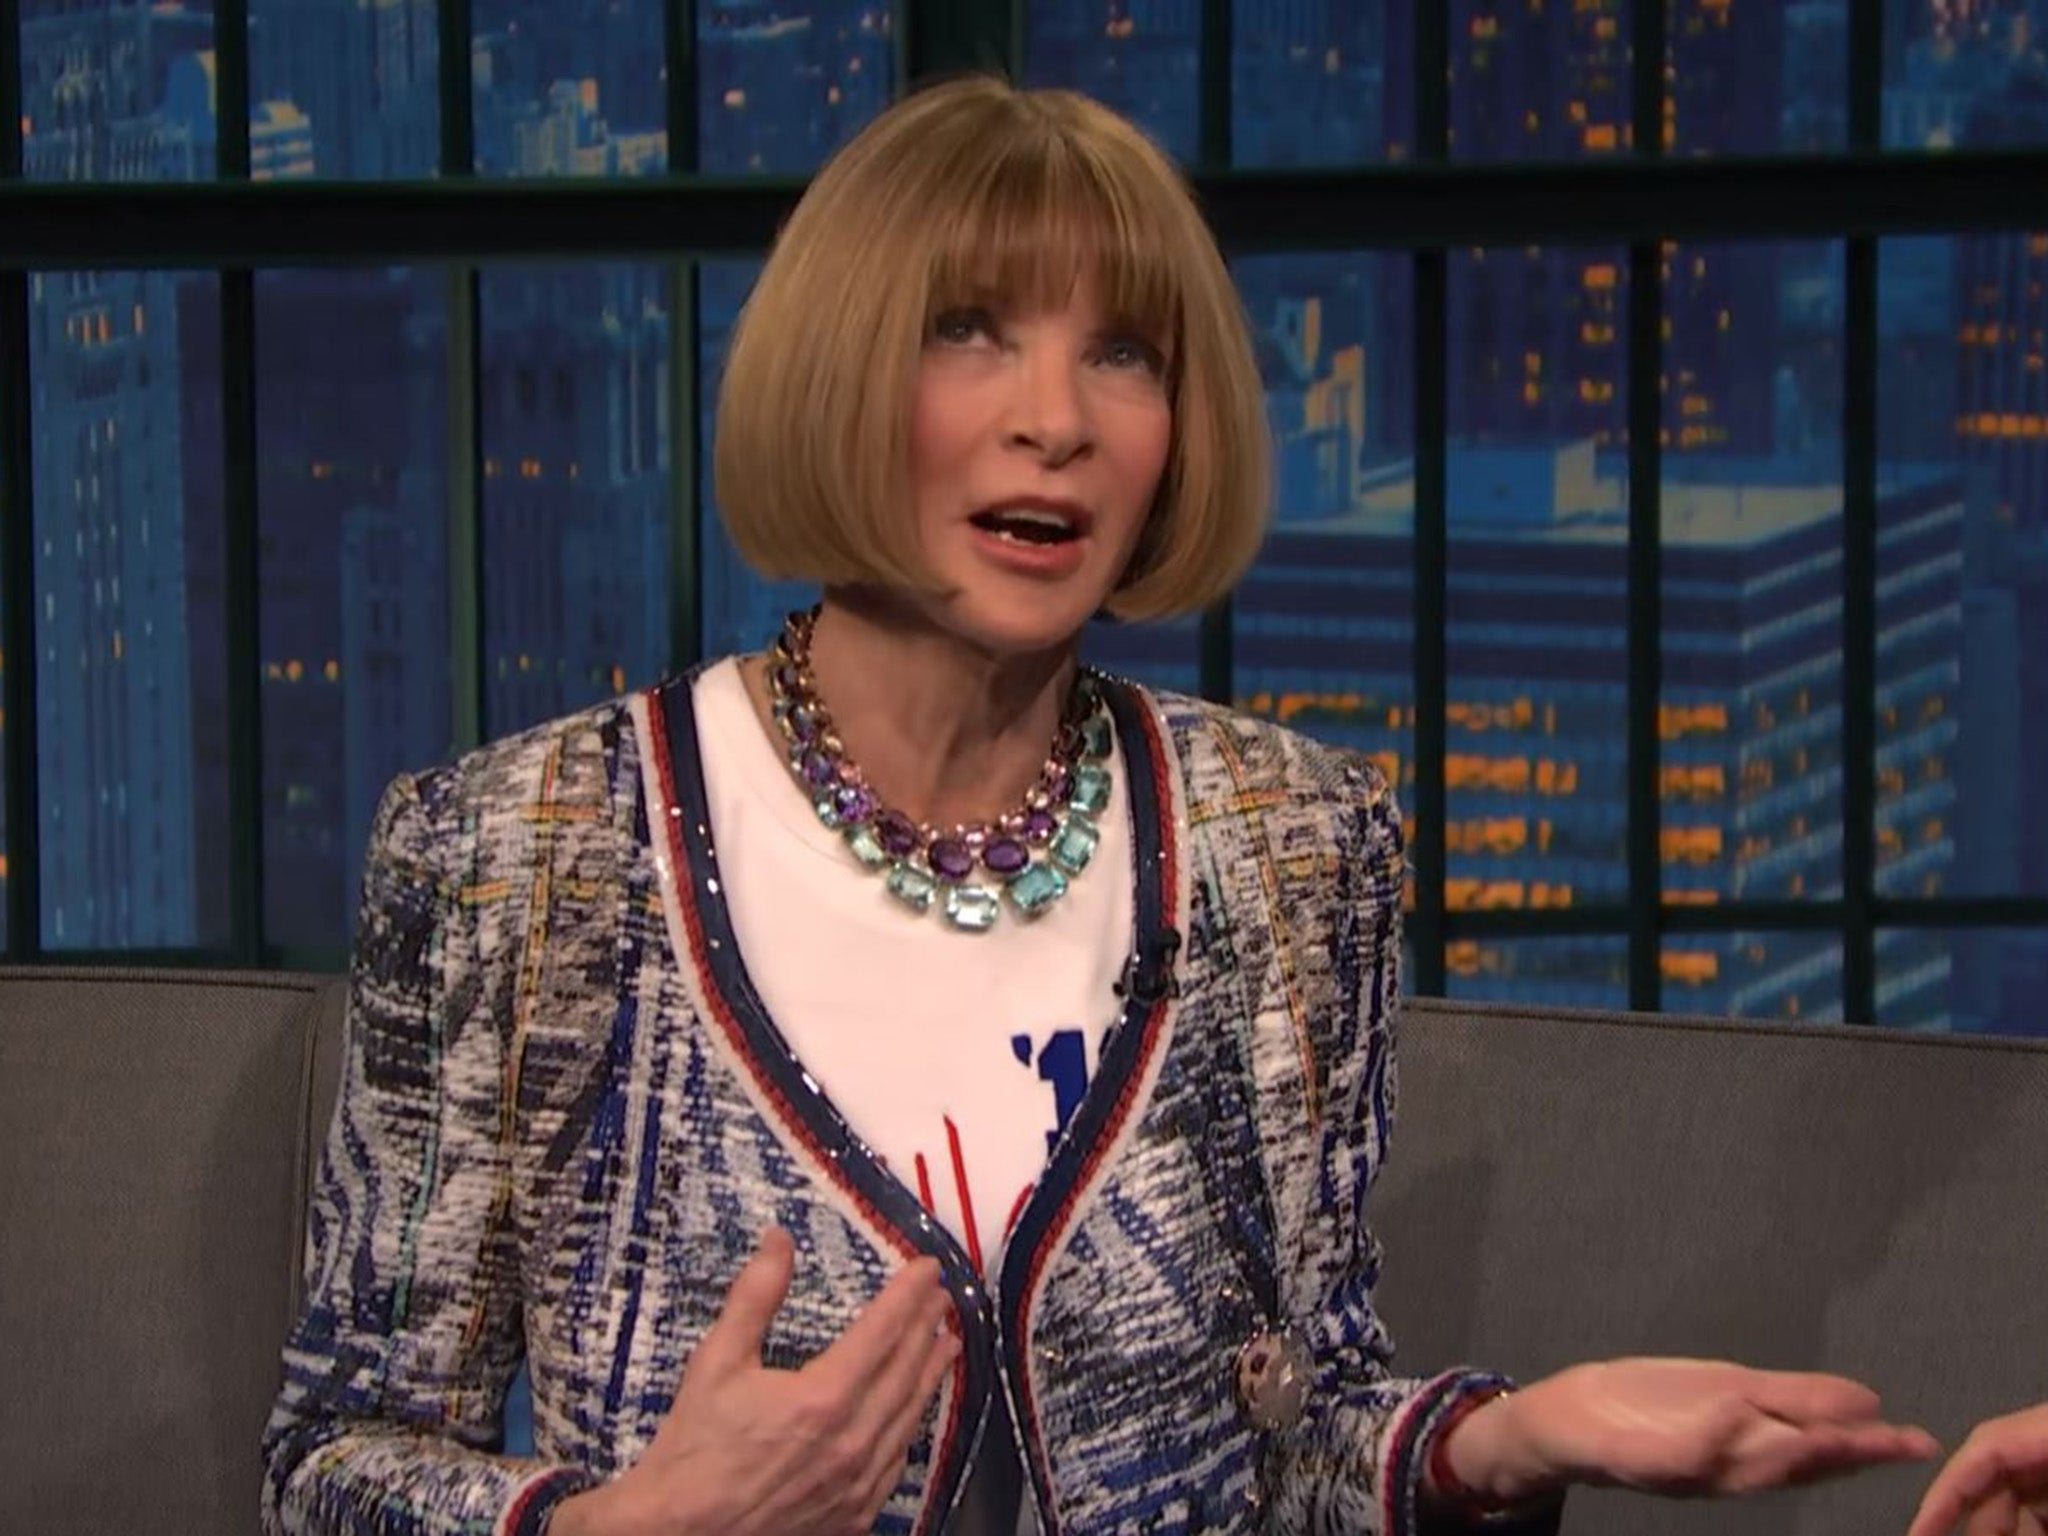 Anna Wintour 'meets With Donald Trump' After Slating The